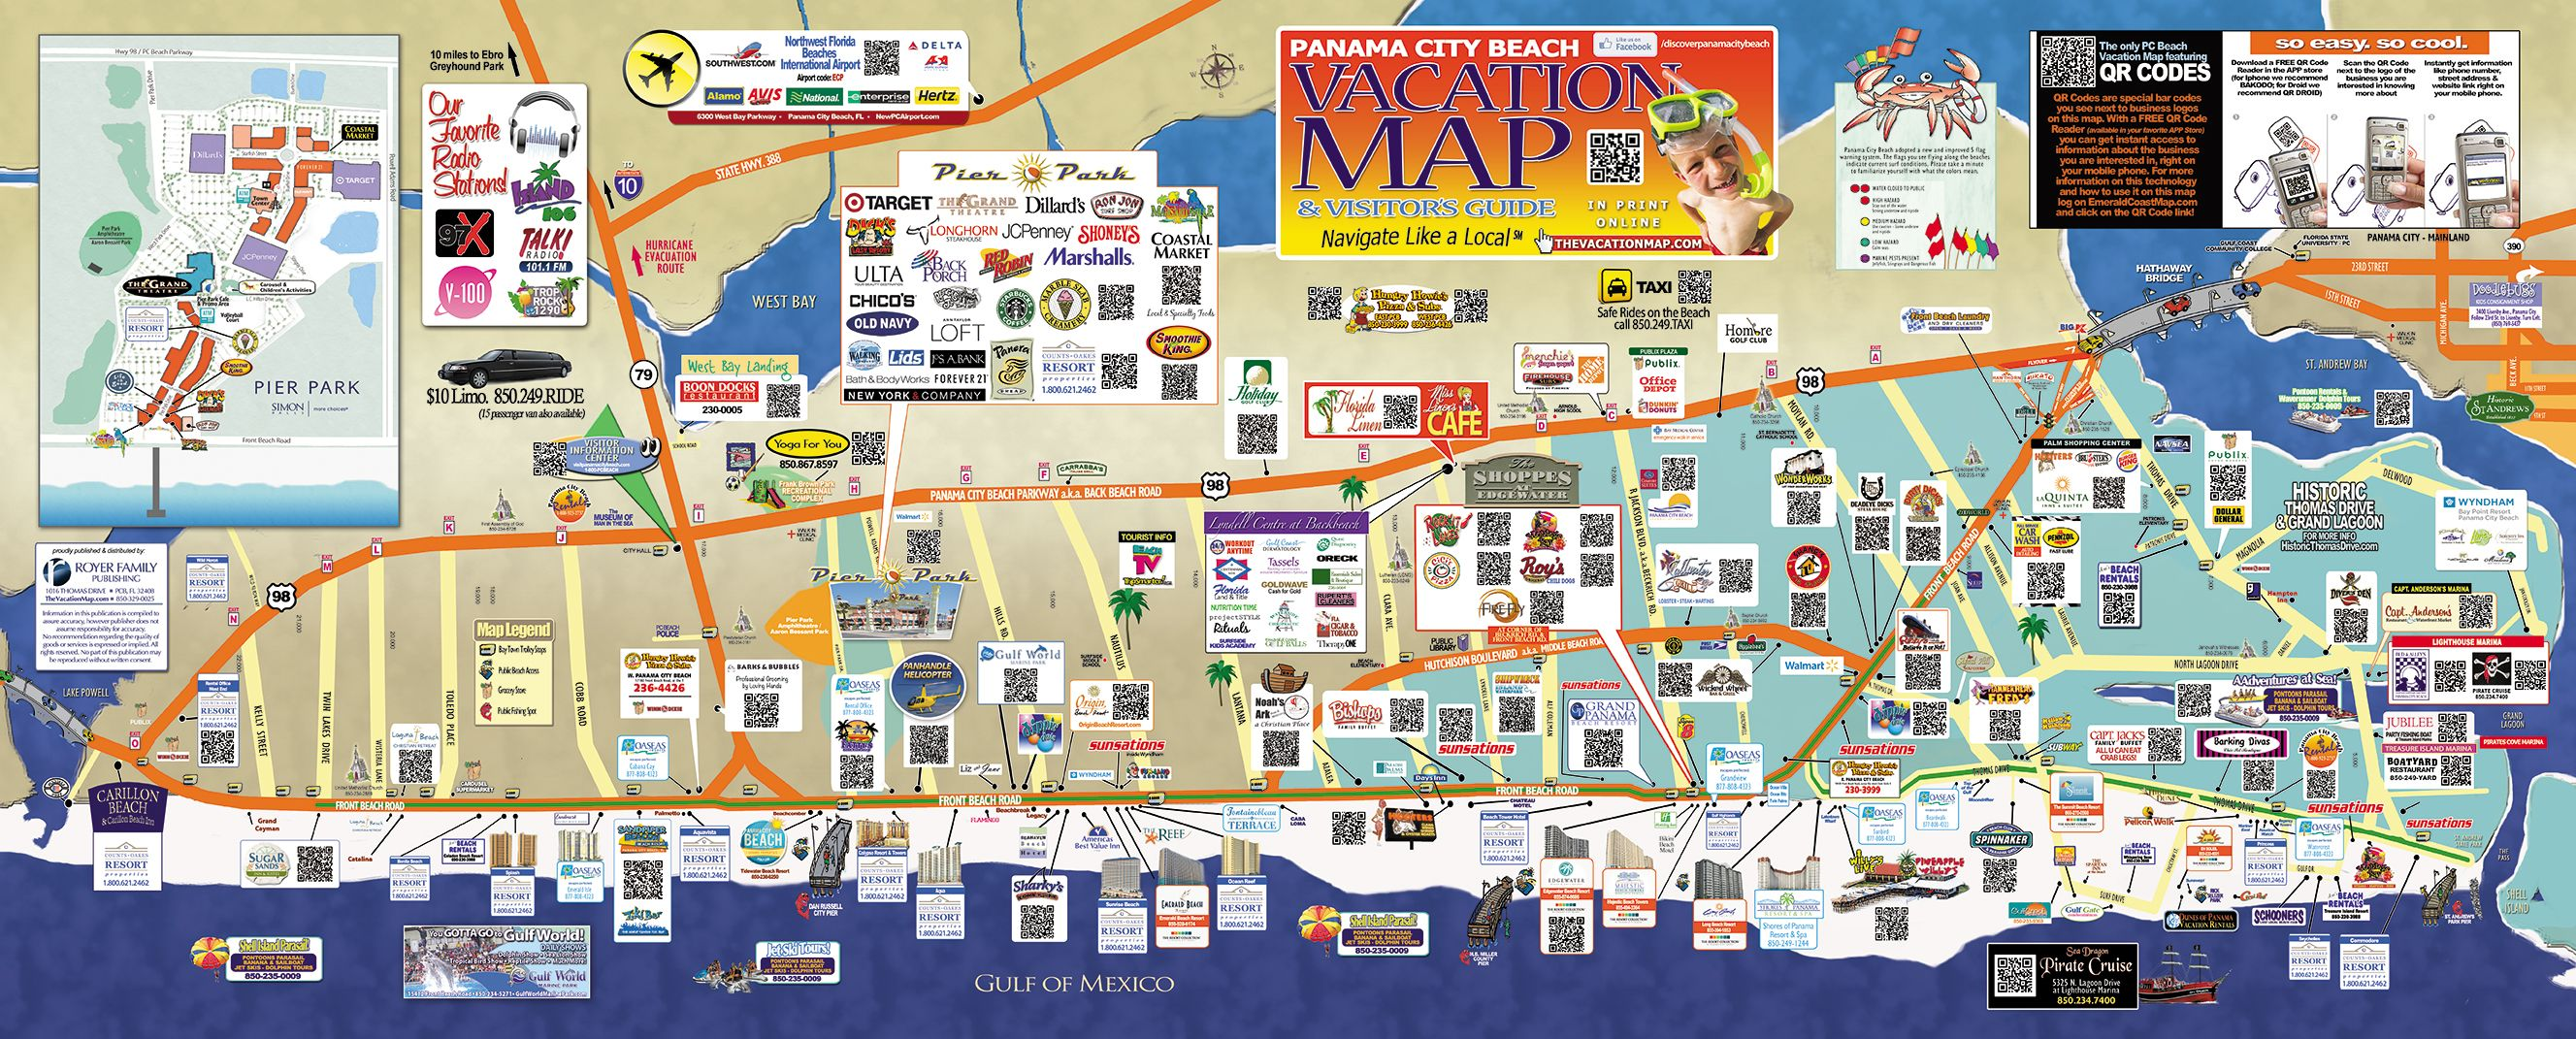 If You Re Searching For The Best Panama City Beach Map Then Look No Further